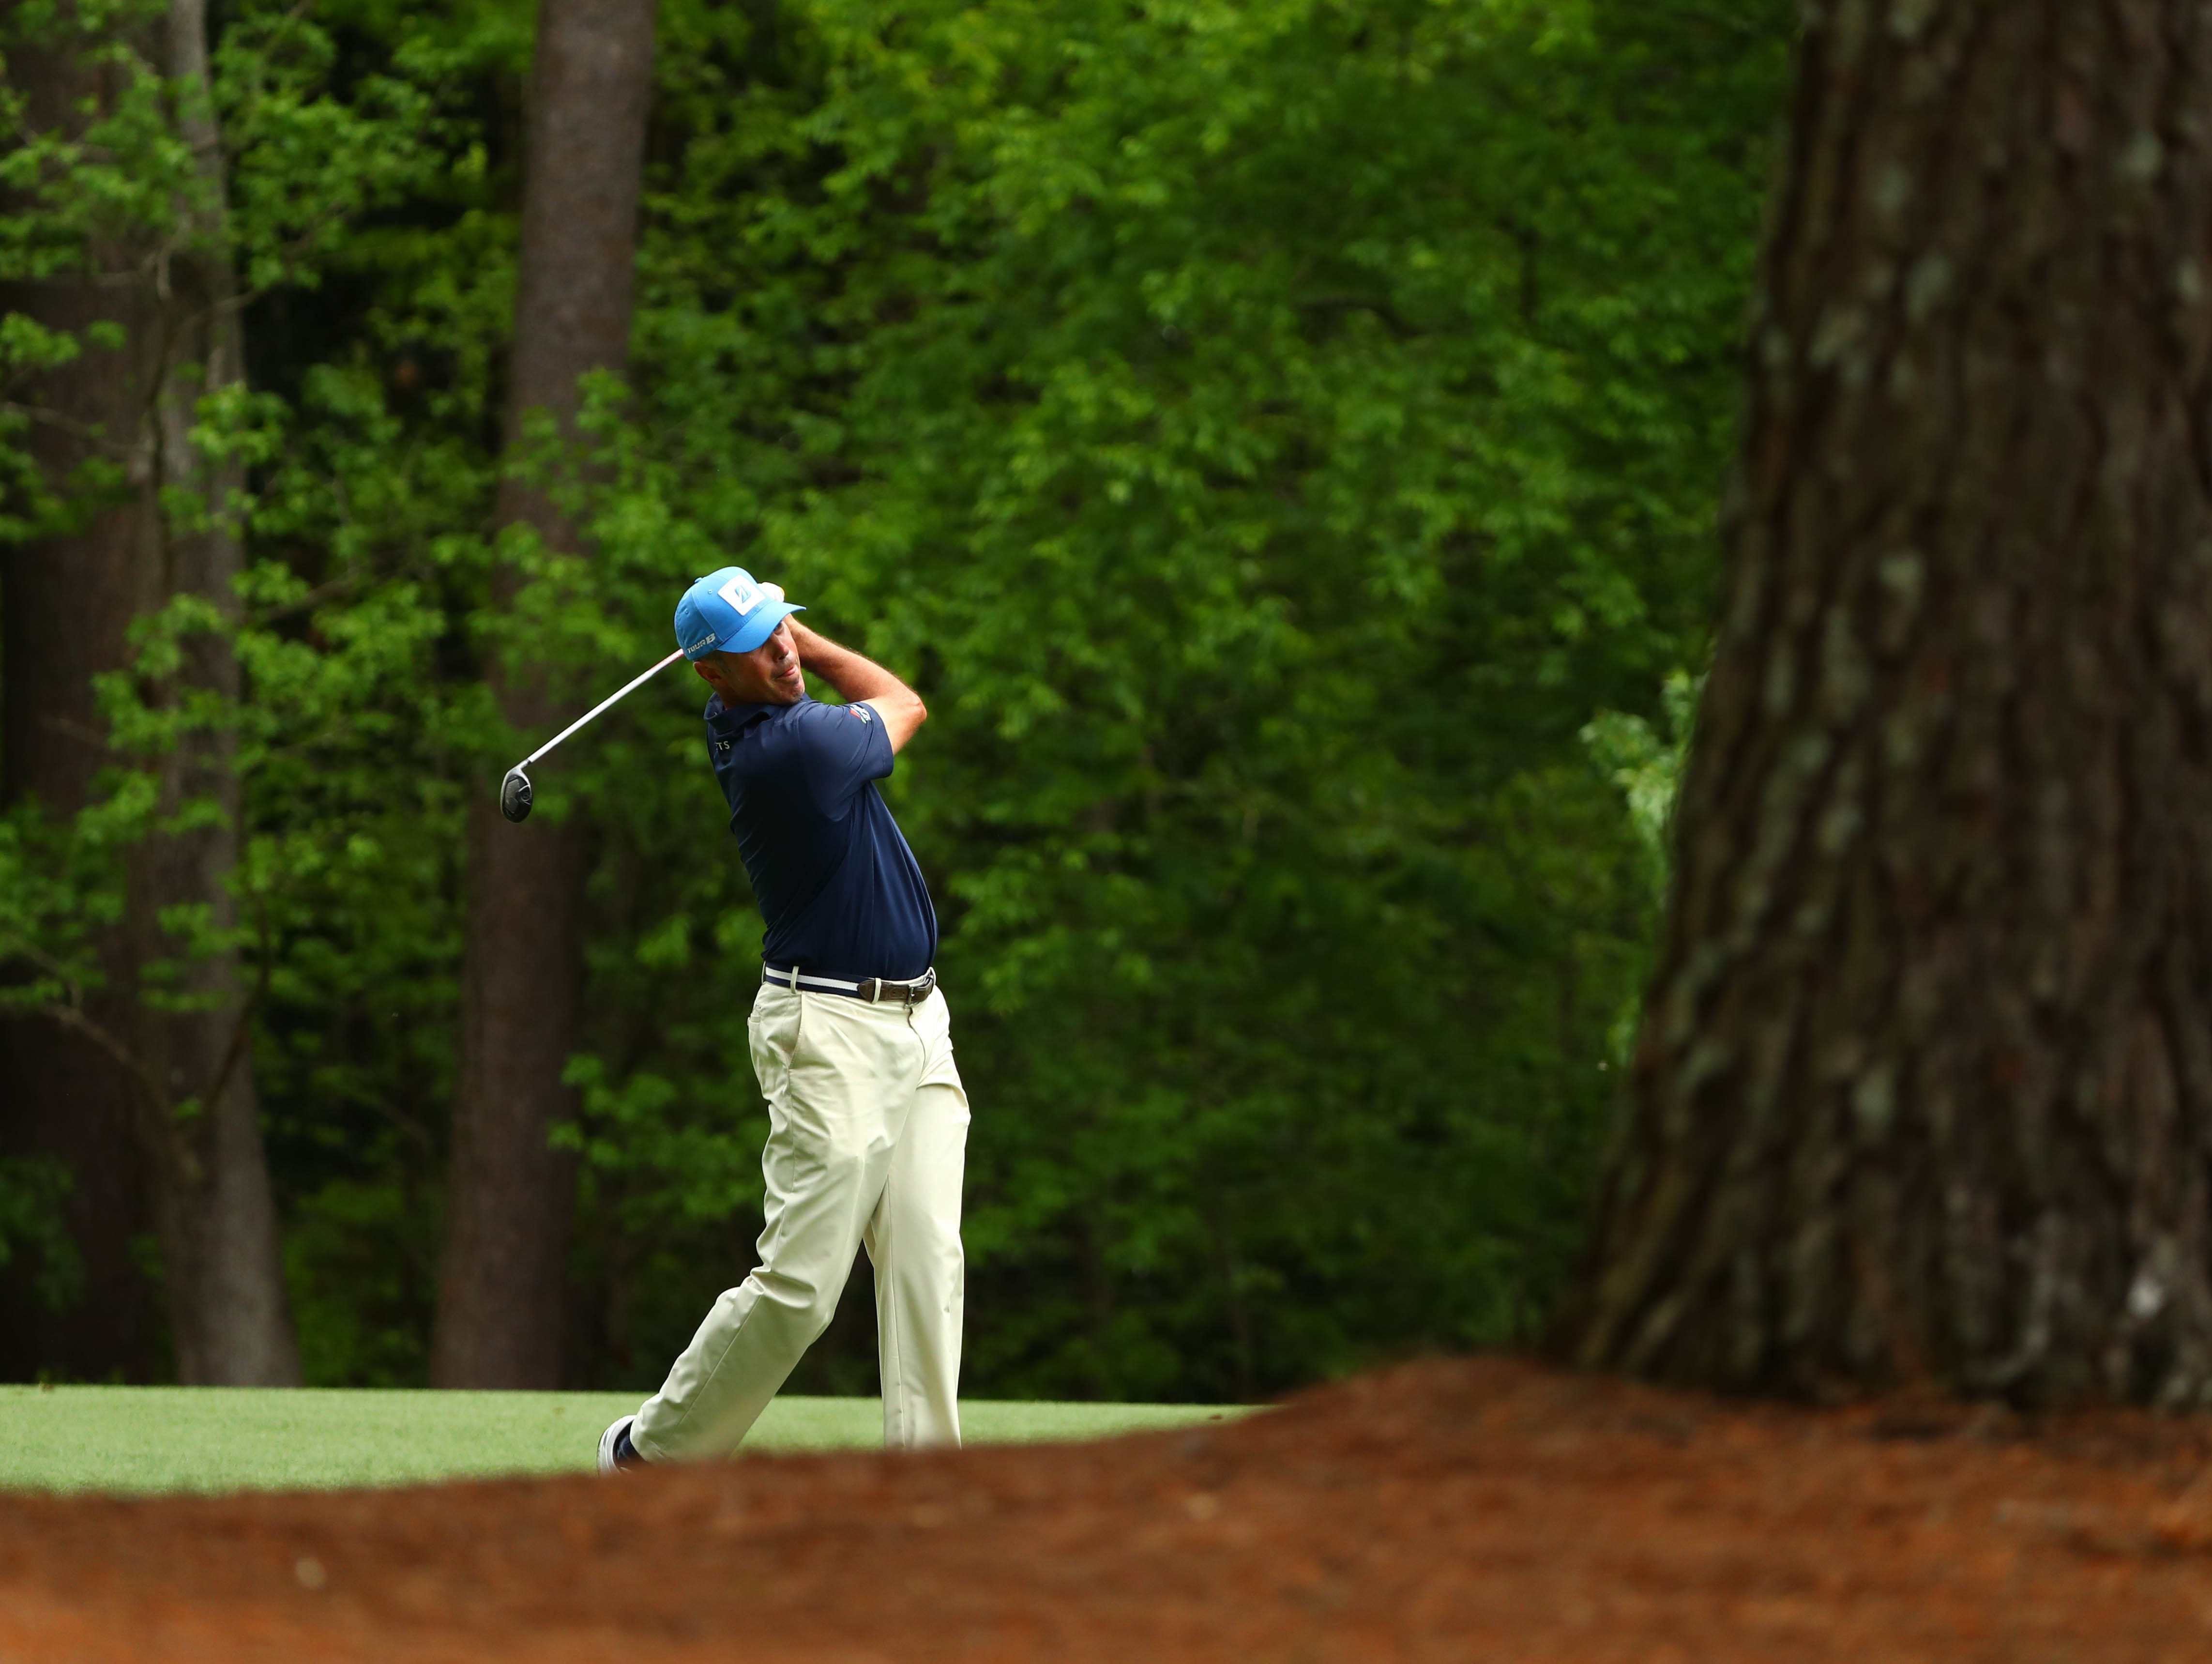 Apr 12, 2019; Augusta, GA, USA; Matt Kuchar plays a shot on the 13th hole during the second round of The Masters golf tournament at Augusta National Golf Club. Mandatory Credit: Rob Schumacher-USA TODAY Sports